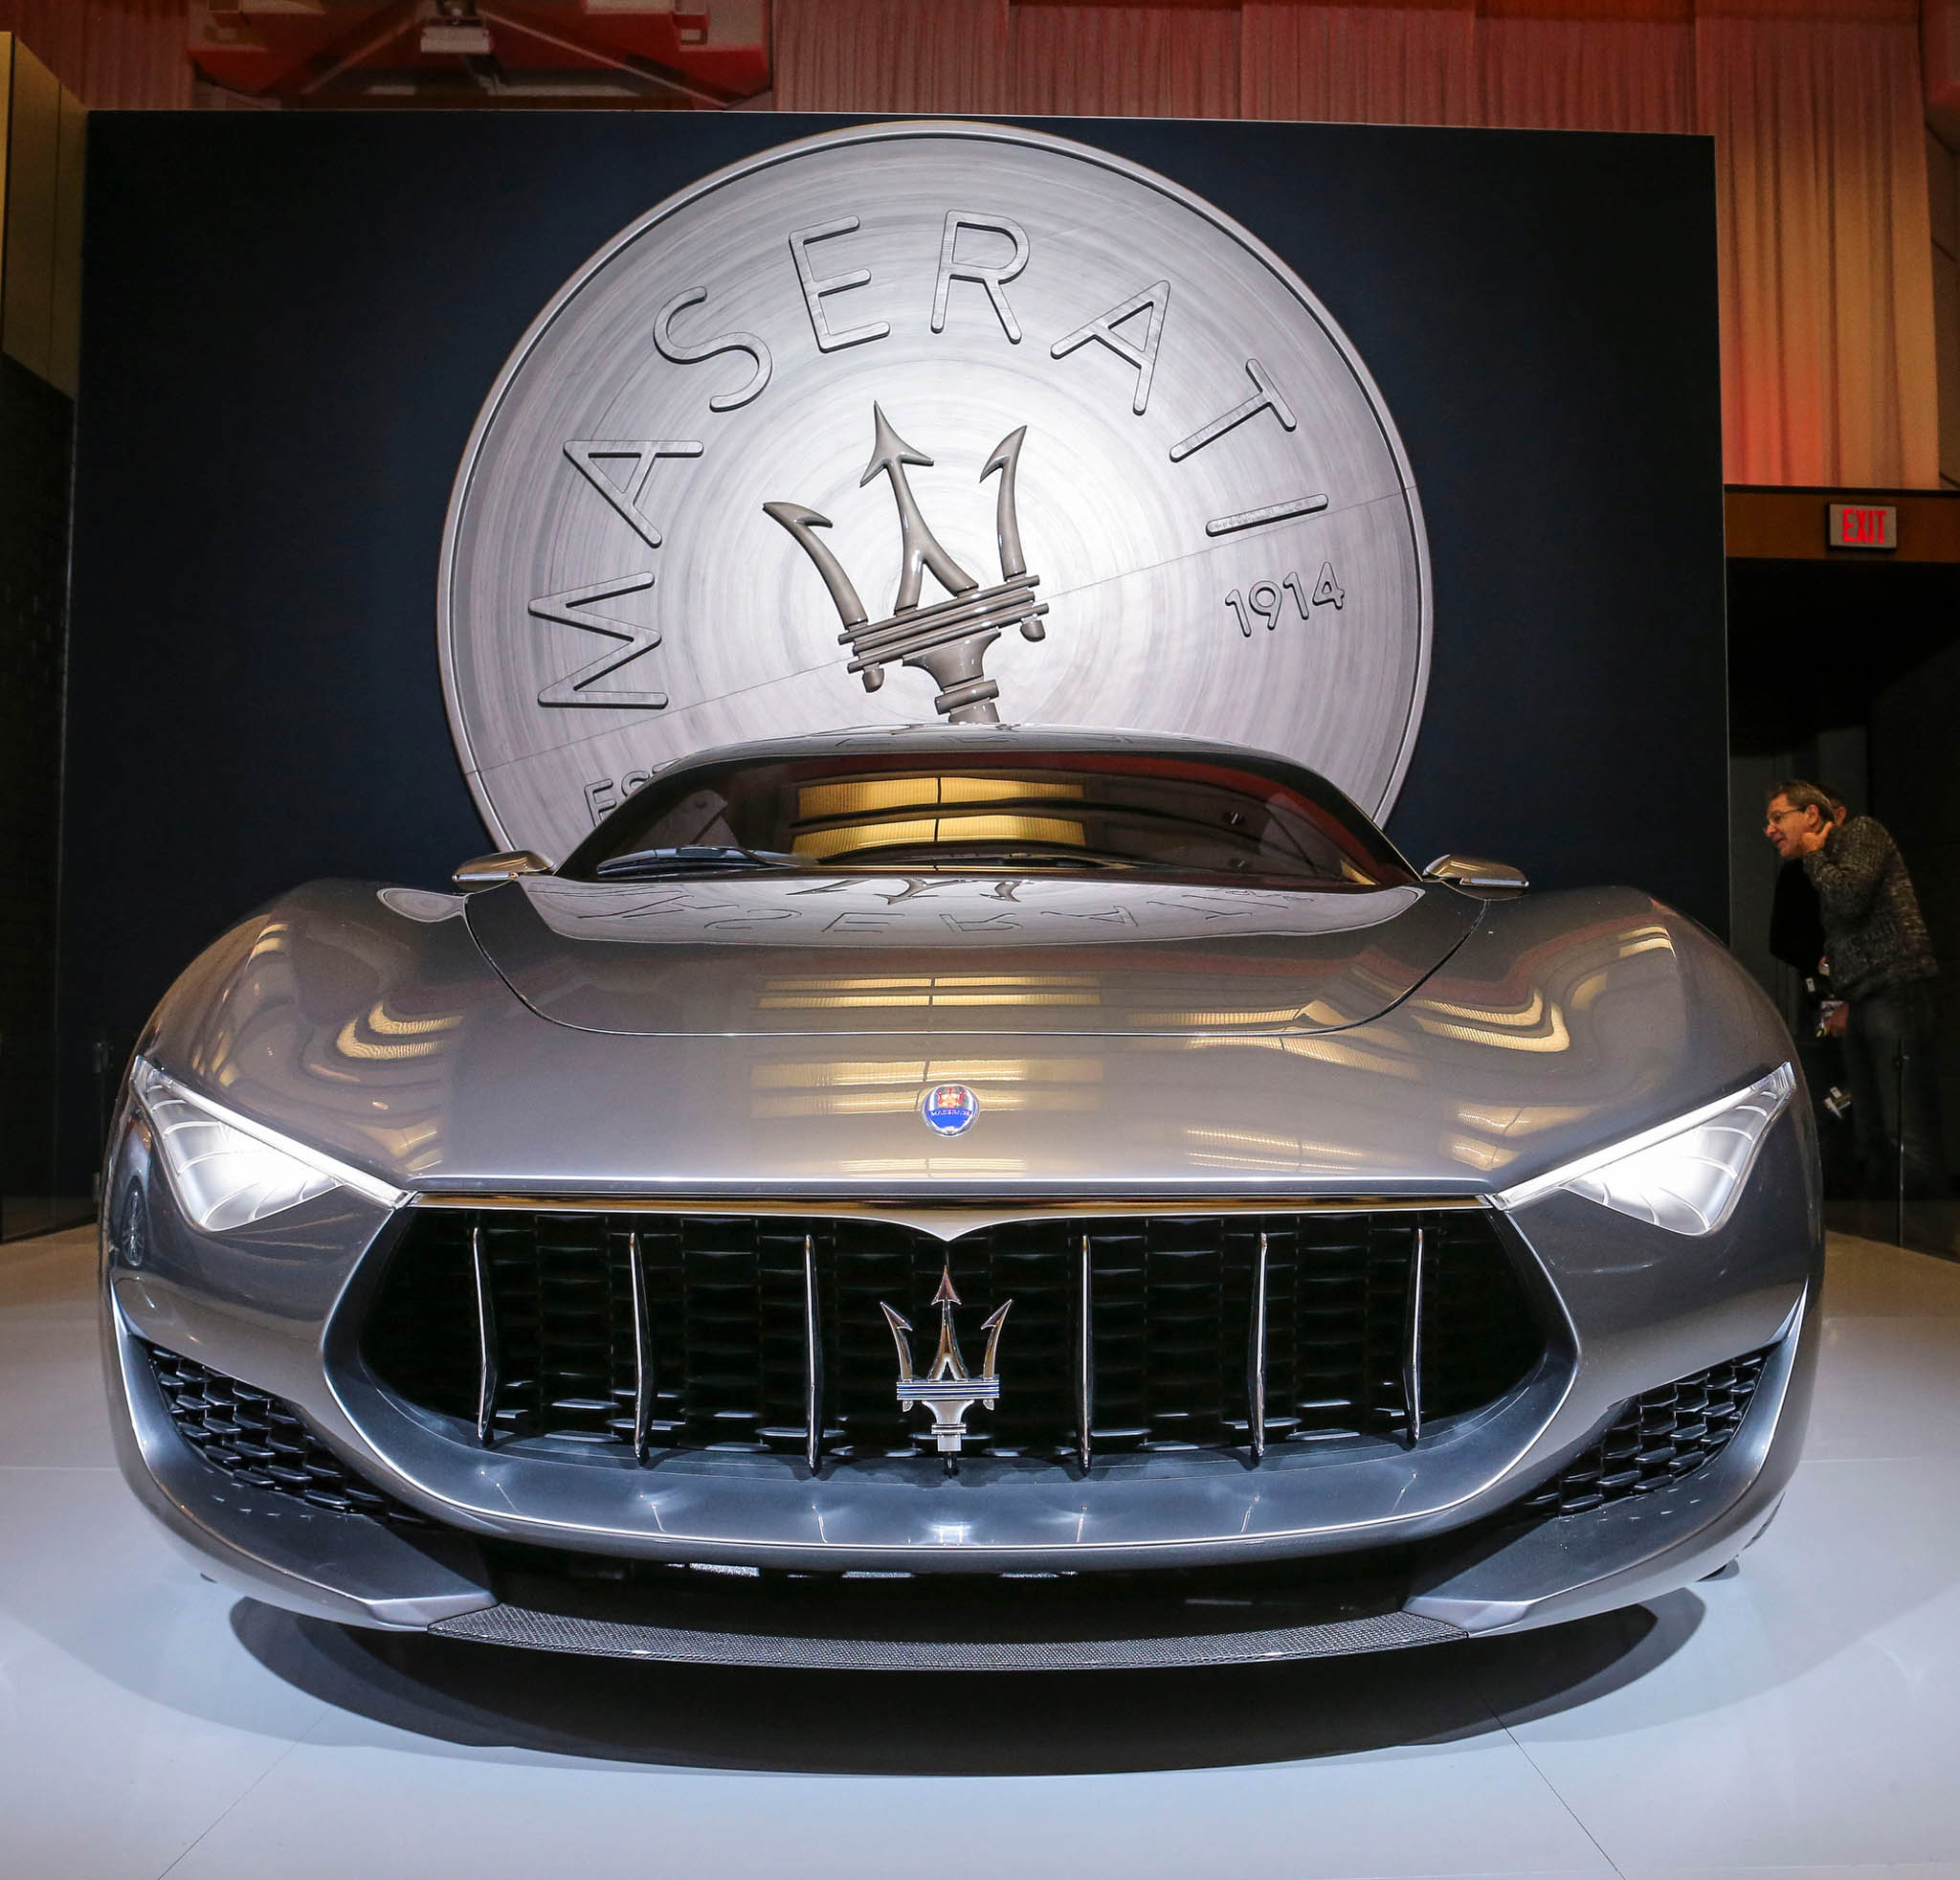 TORONTO, ON- FEBRUARY 17 - The Maserati Alfieri Concept came to the show. AutoExotica brings super luxury cars to the 2015 edition of the Canadian International AutoShow (CIAS) in Toronto it's bright and warm. February 17, 2015